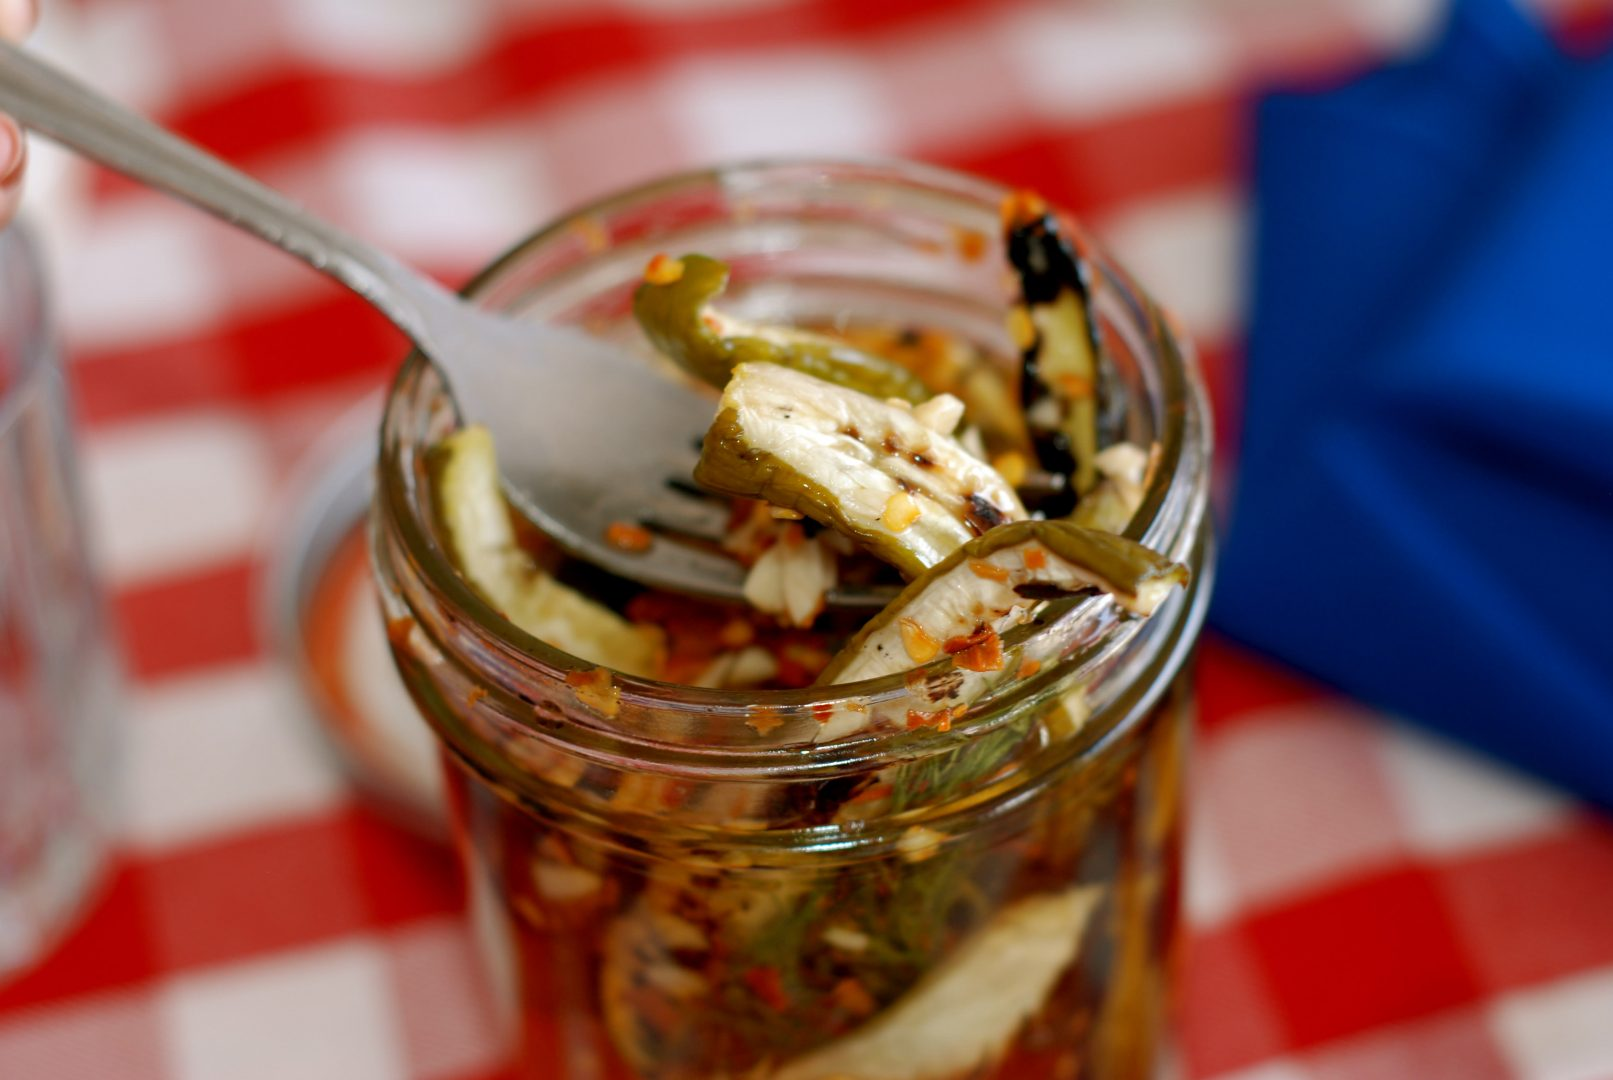 Chris Lilly's Grilled Sweet And Spicy Pickles